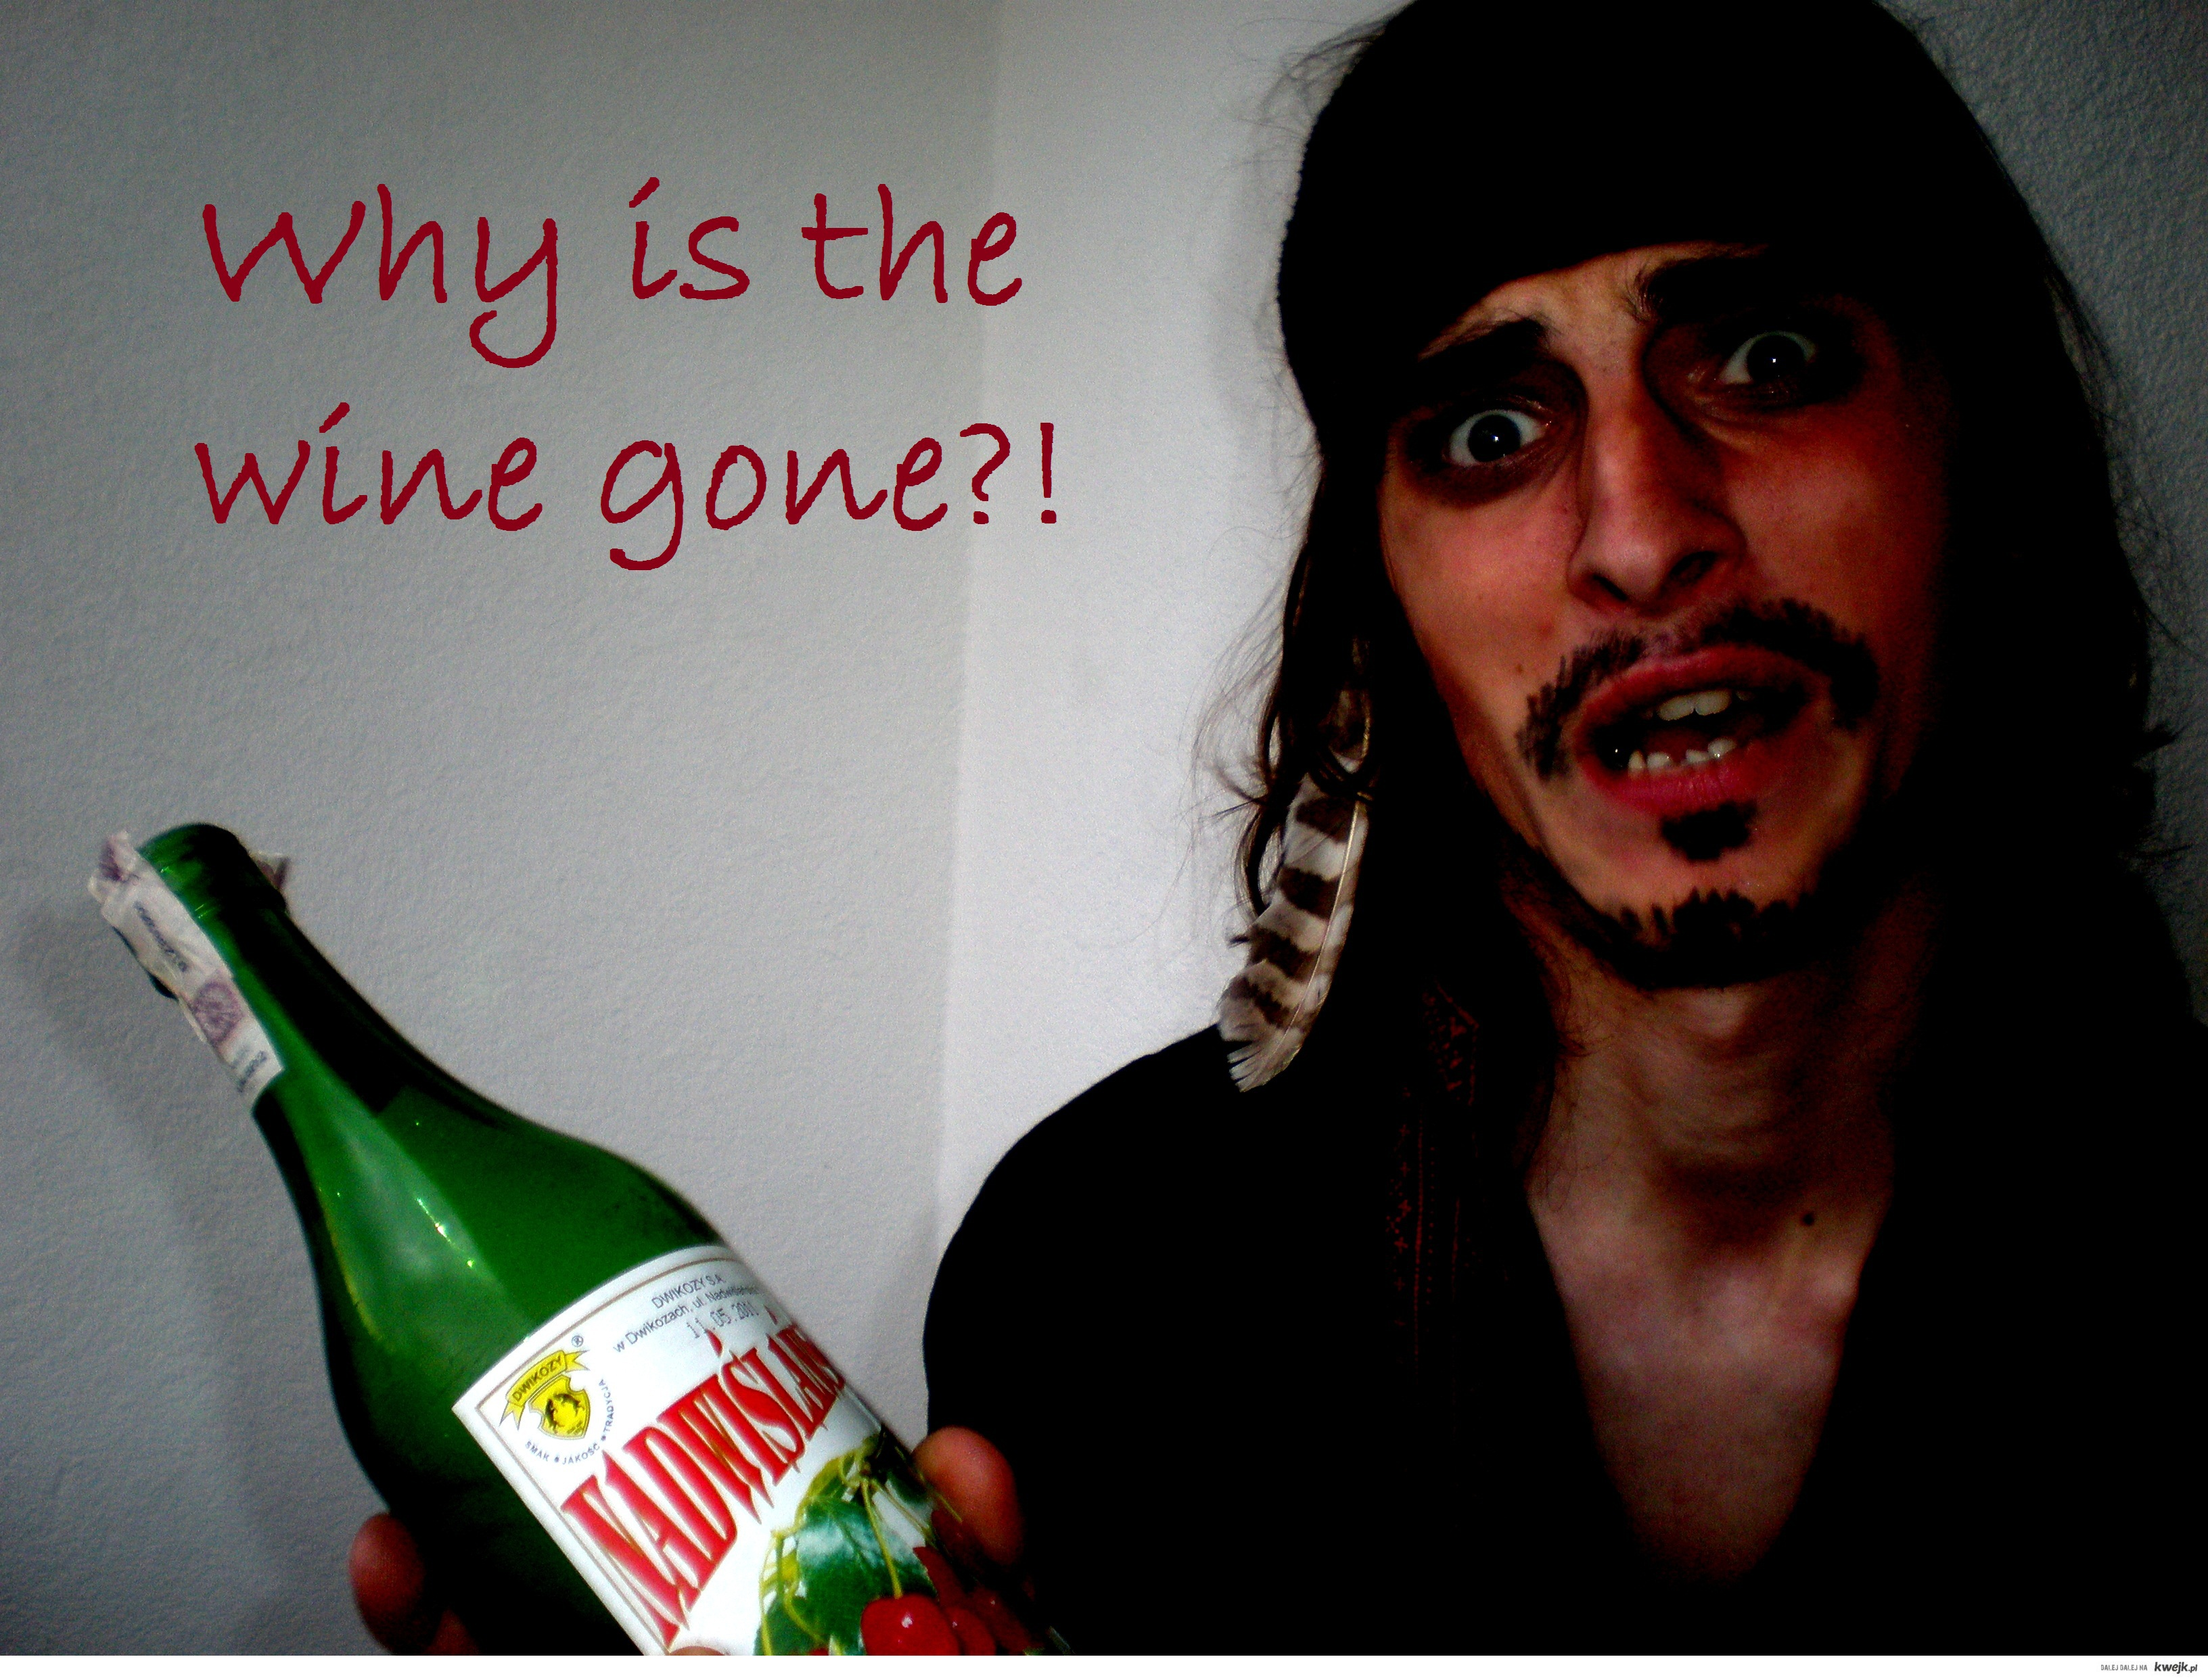 why is the wine gone?